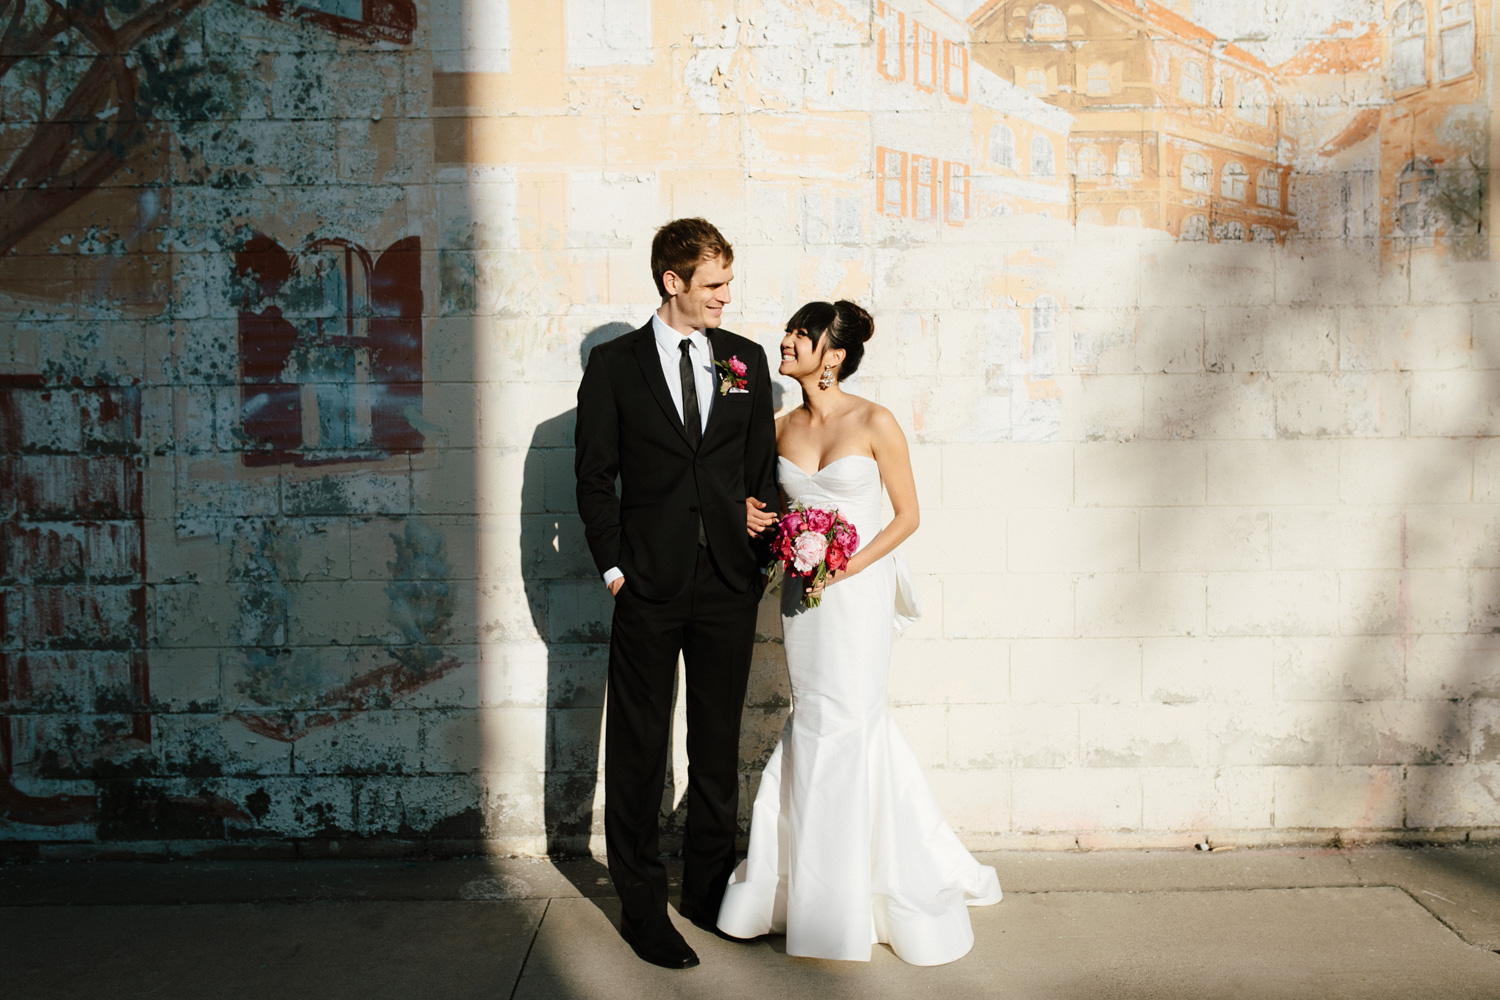 Los Angeles Wedding Photographer, The Elysian  - The Gathering Season x weareleoandkat 063.JPG